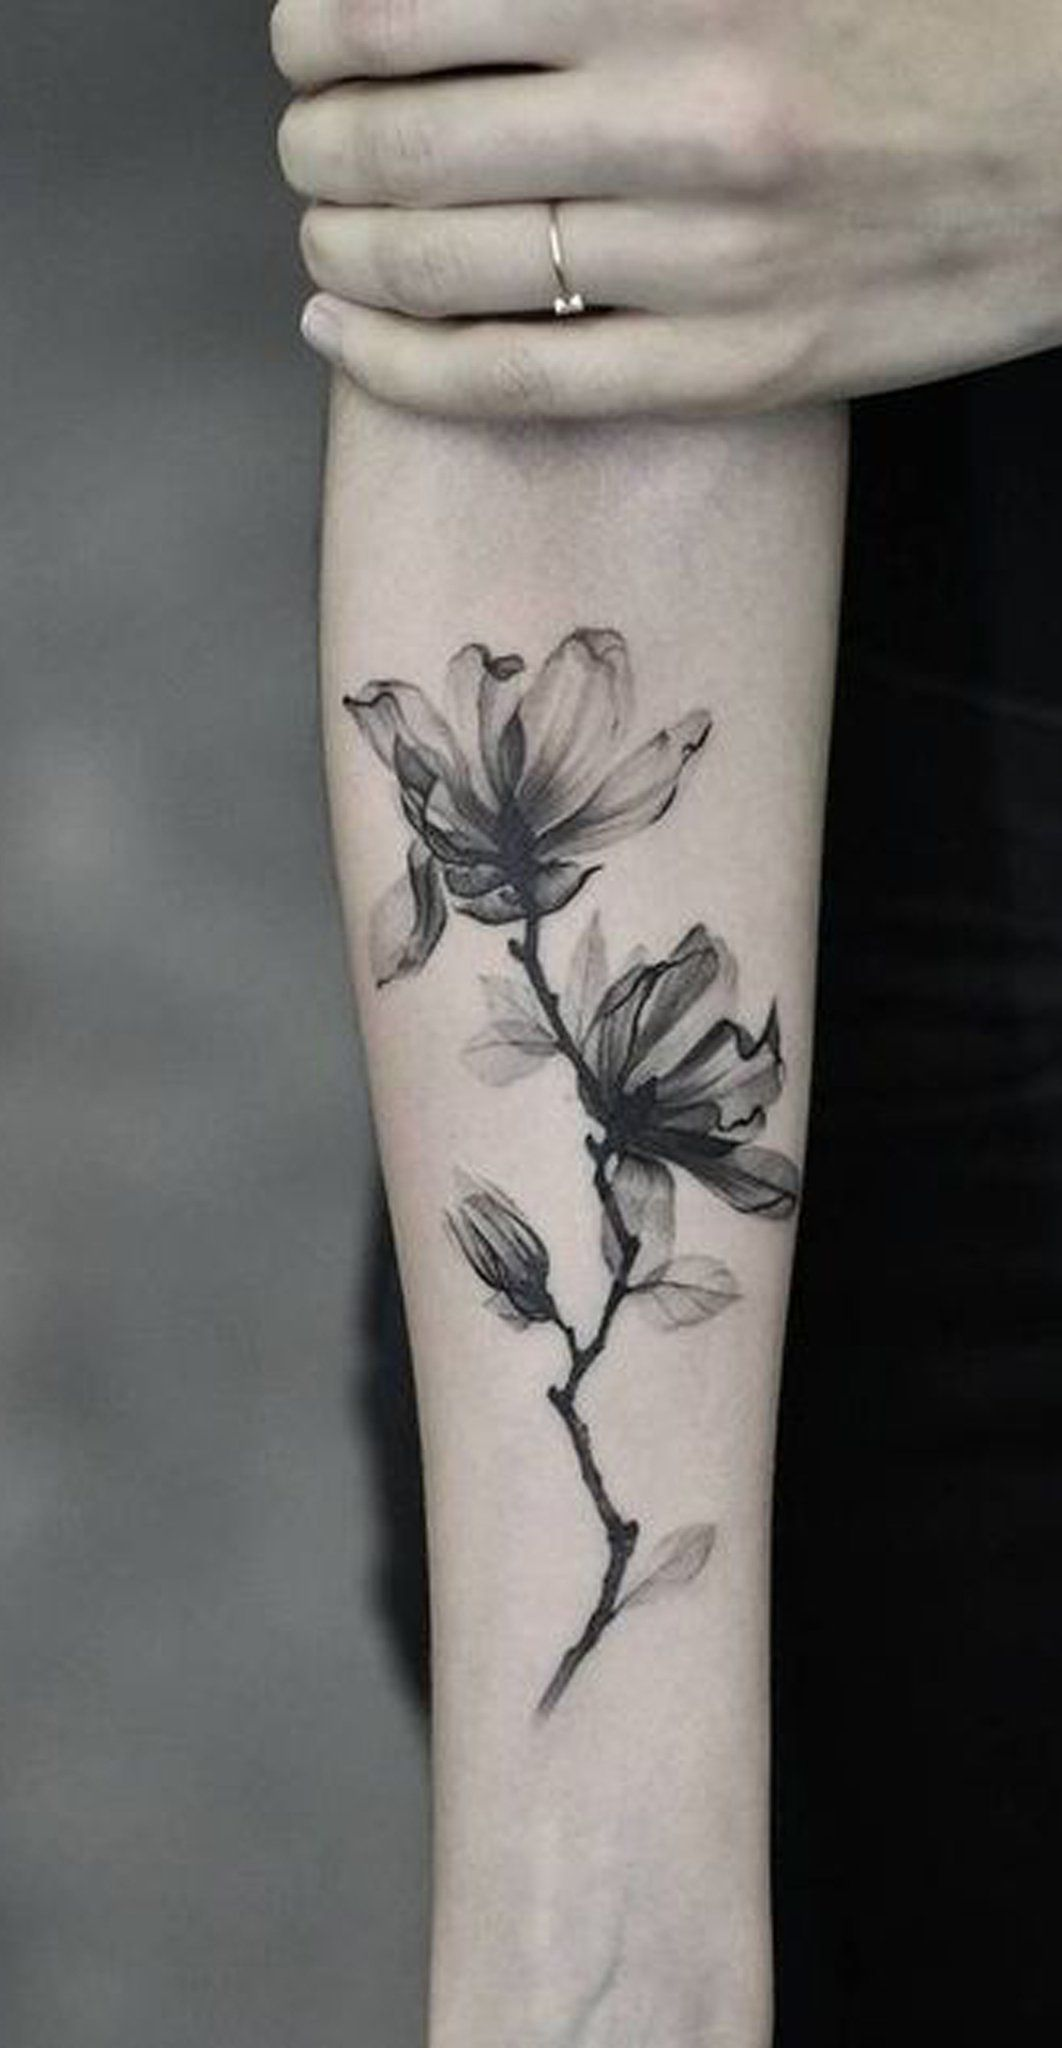 The Best Free Forearm Watercolor Images Download From 75 Free